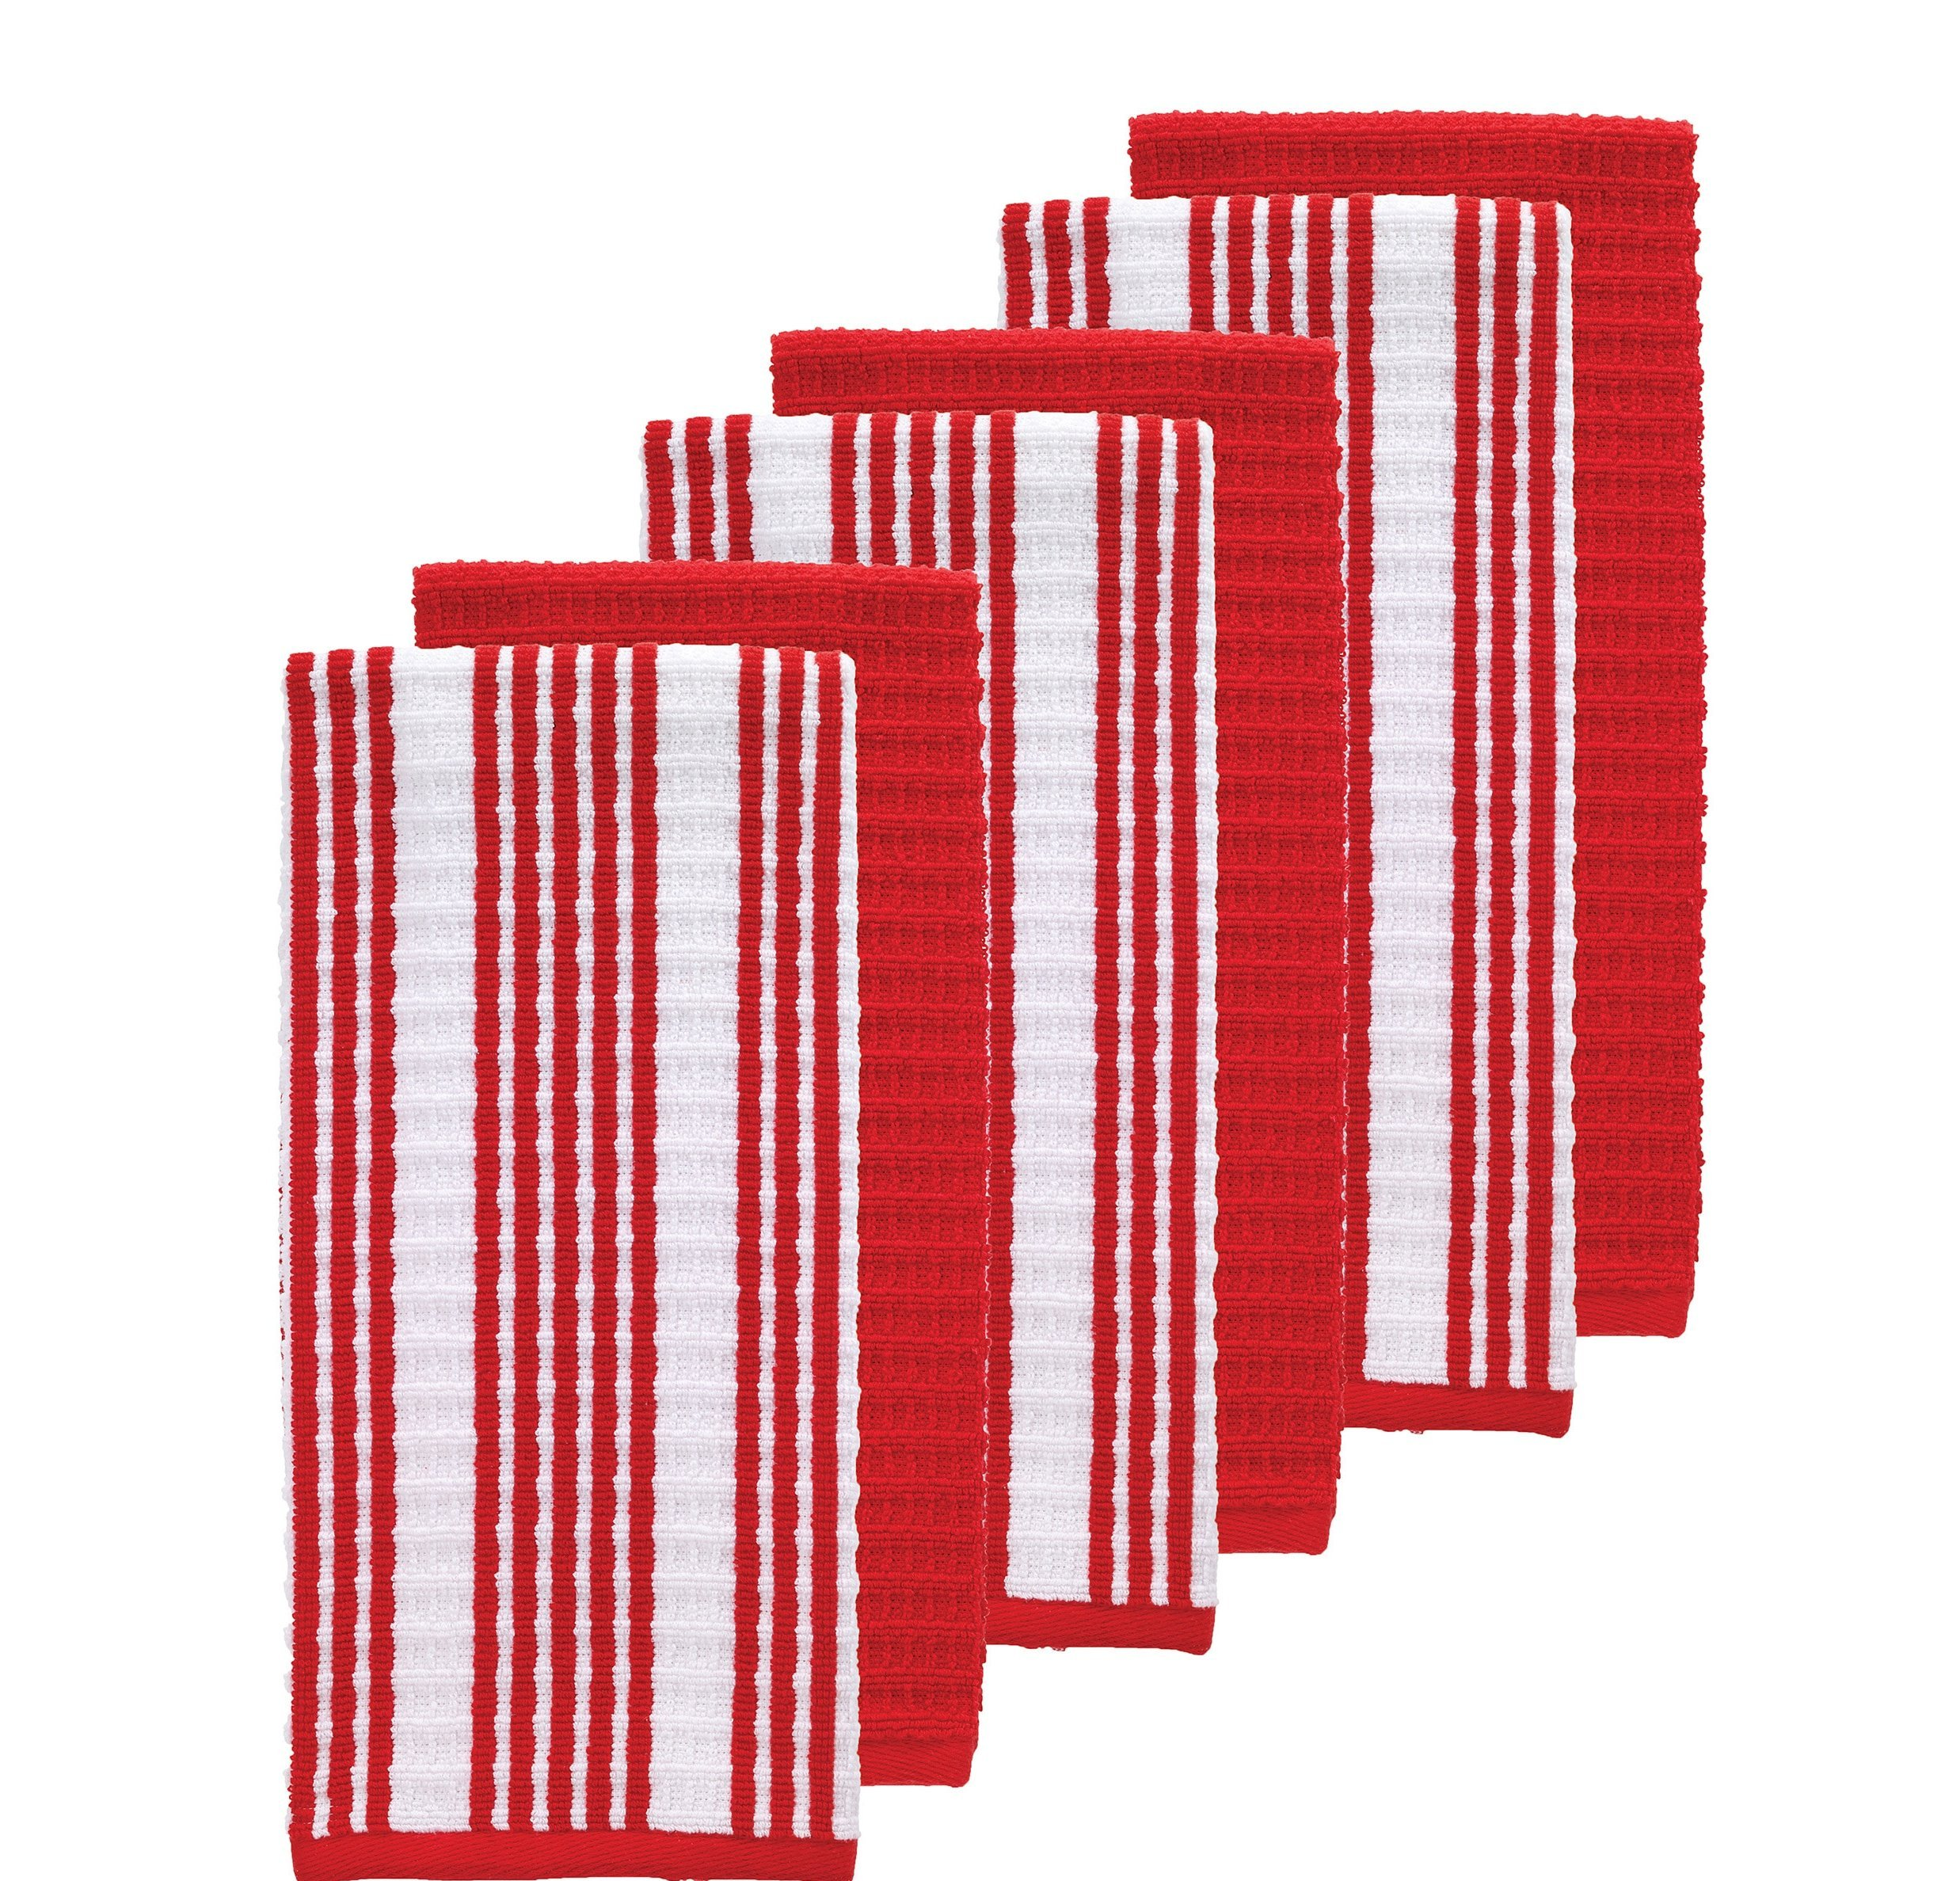 Set Of 6 Oversized Red Striped Theme Kitchen Dish Towel Set, Sleek Trendy Classic Solid Color Linen Pattern Cloths Highly Absorbent Soft Plush Vibrant Vertical Stripes Classic, Cotton Terry by N2